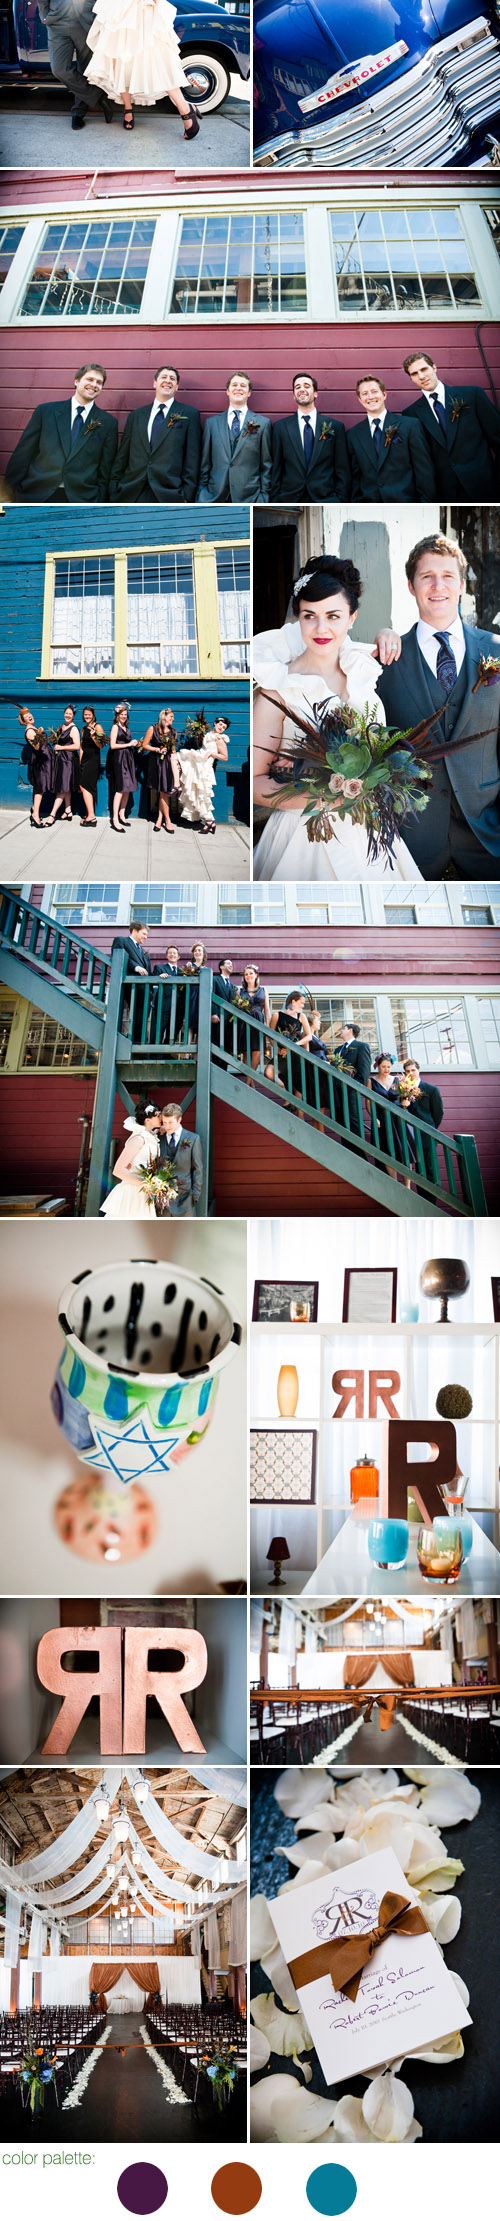 dramatic and stylish Seattle real wedding at Sodo Park, images by Laurel McConnell Photography